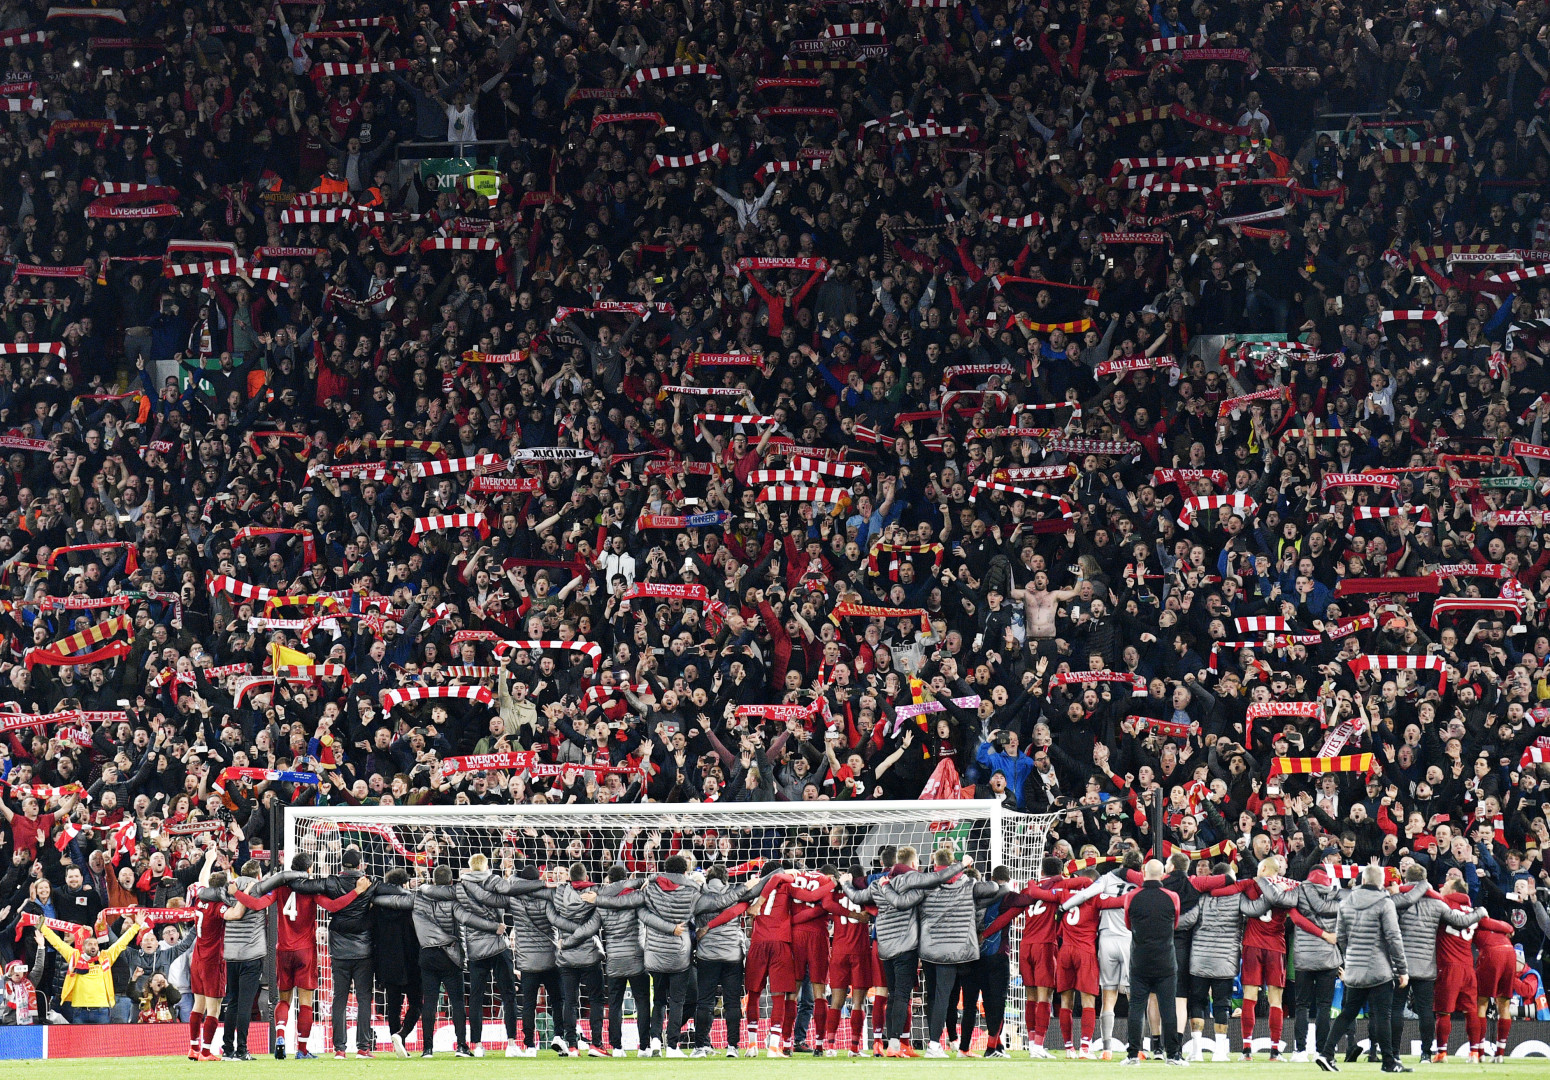 Liverpool players celebrate in front of their fans after the UEFA Champions League semi final 2nd leg match between Liverpool FC and FC Barcelona at Anfield, Liverpool, Britain, 07 May 2019. Liverpool won 4-0 and advanced to the final. (optimized)